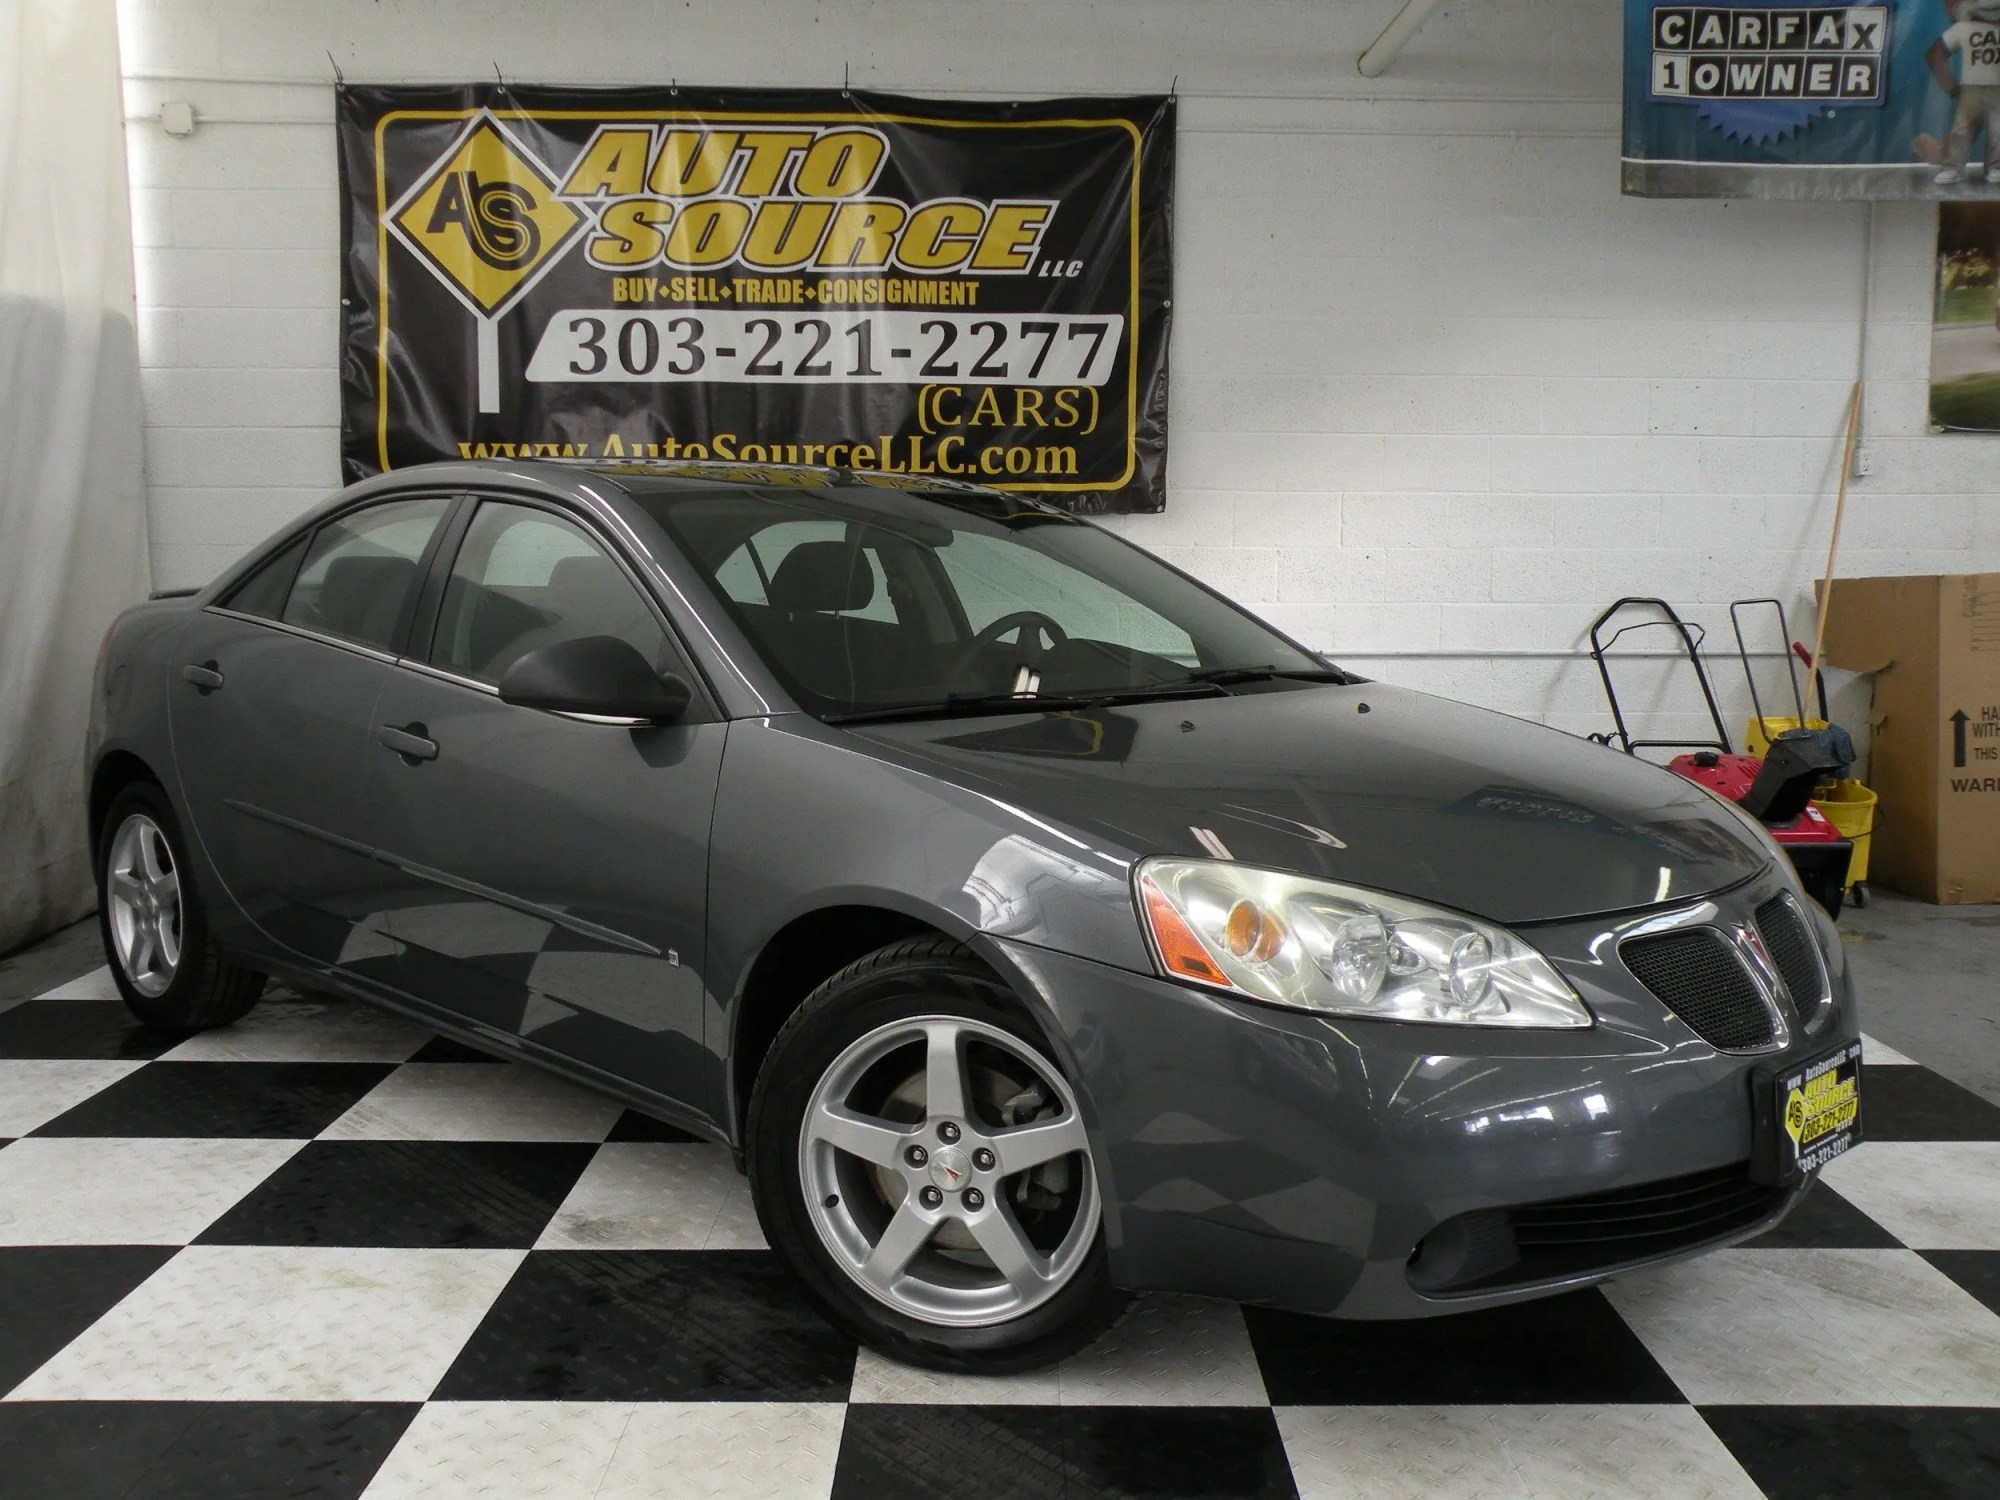 small resolution of 2007 pontiac g6 ultra clean 1 owner car with warranty included